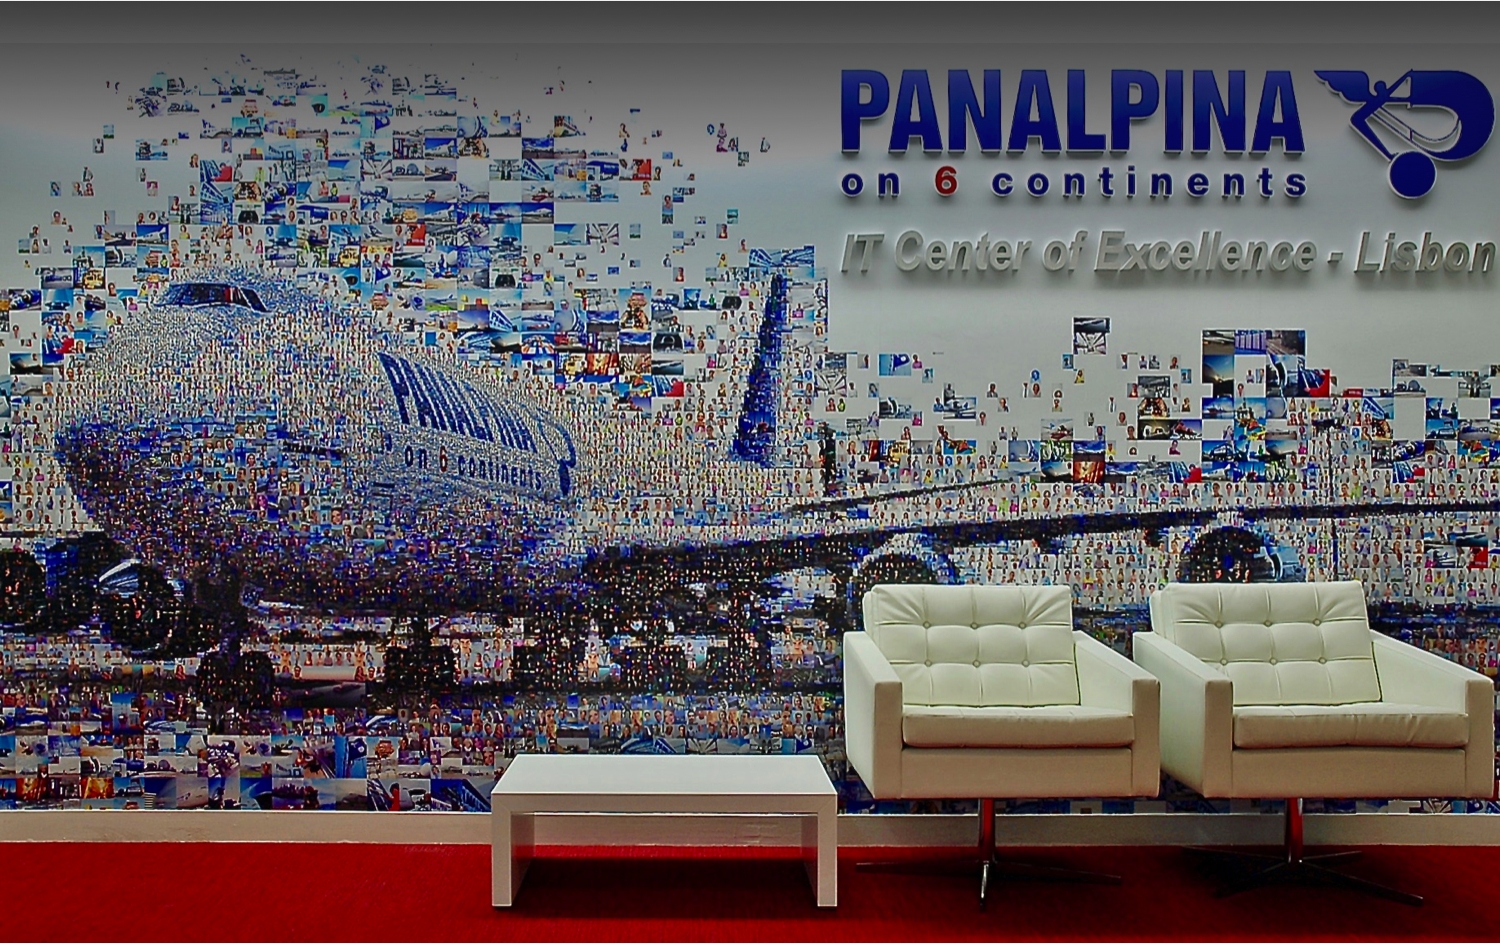 Panalpina Office